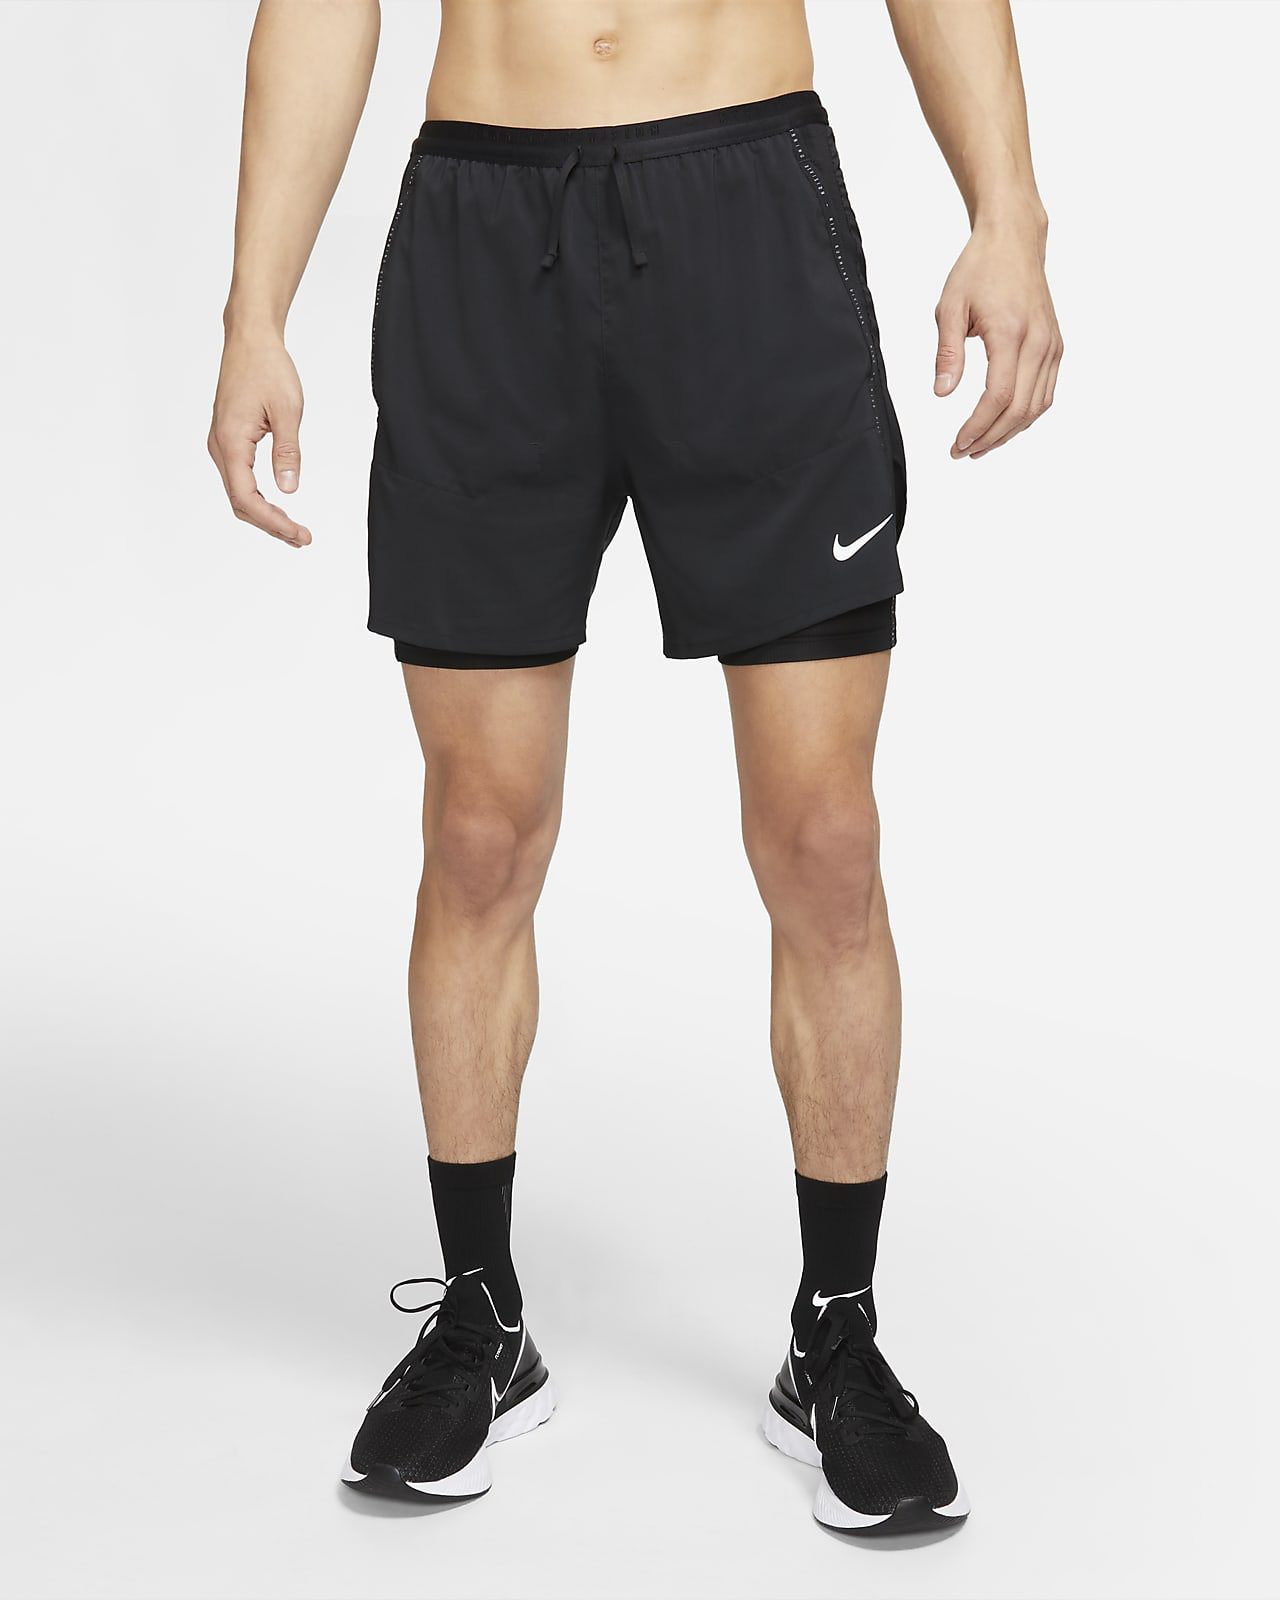 Nike Flex Stride Run Division Men's Hybrid Running Shorts